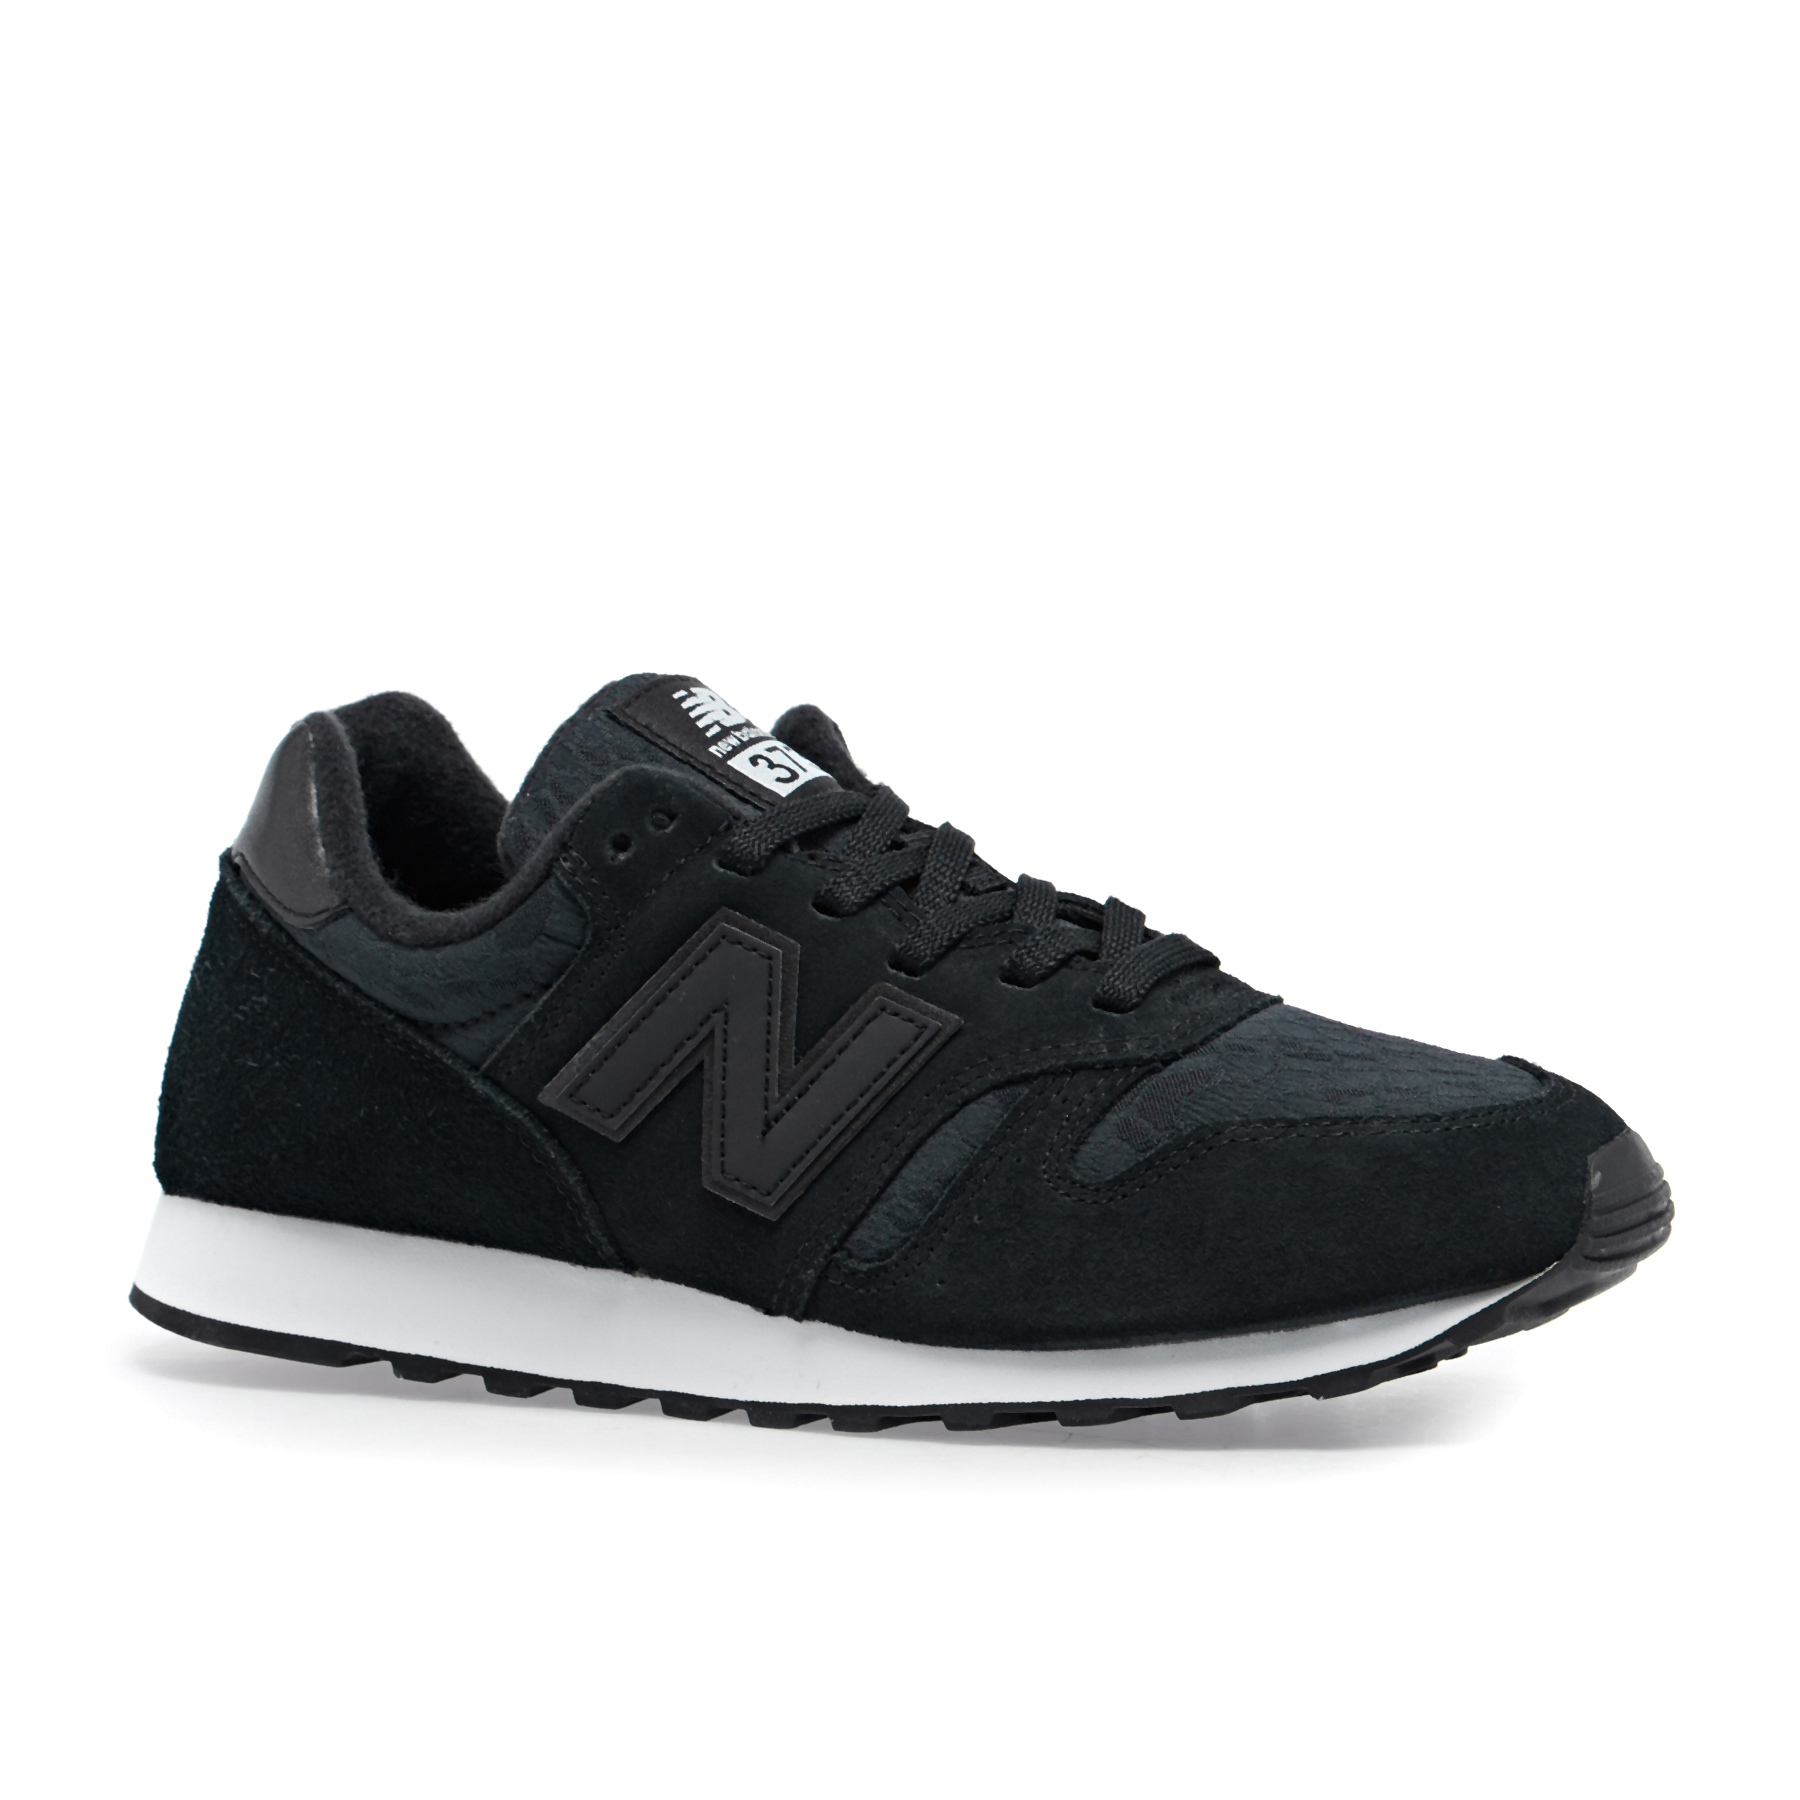 New Balance Wl373 Womens Shoes Free Delivery options on All Orders from Surfdome UK